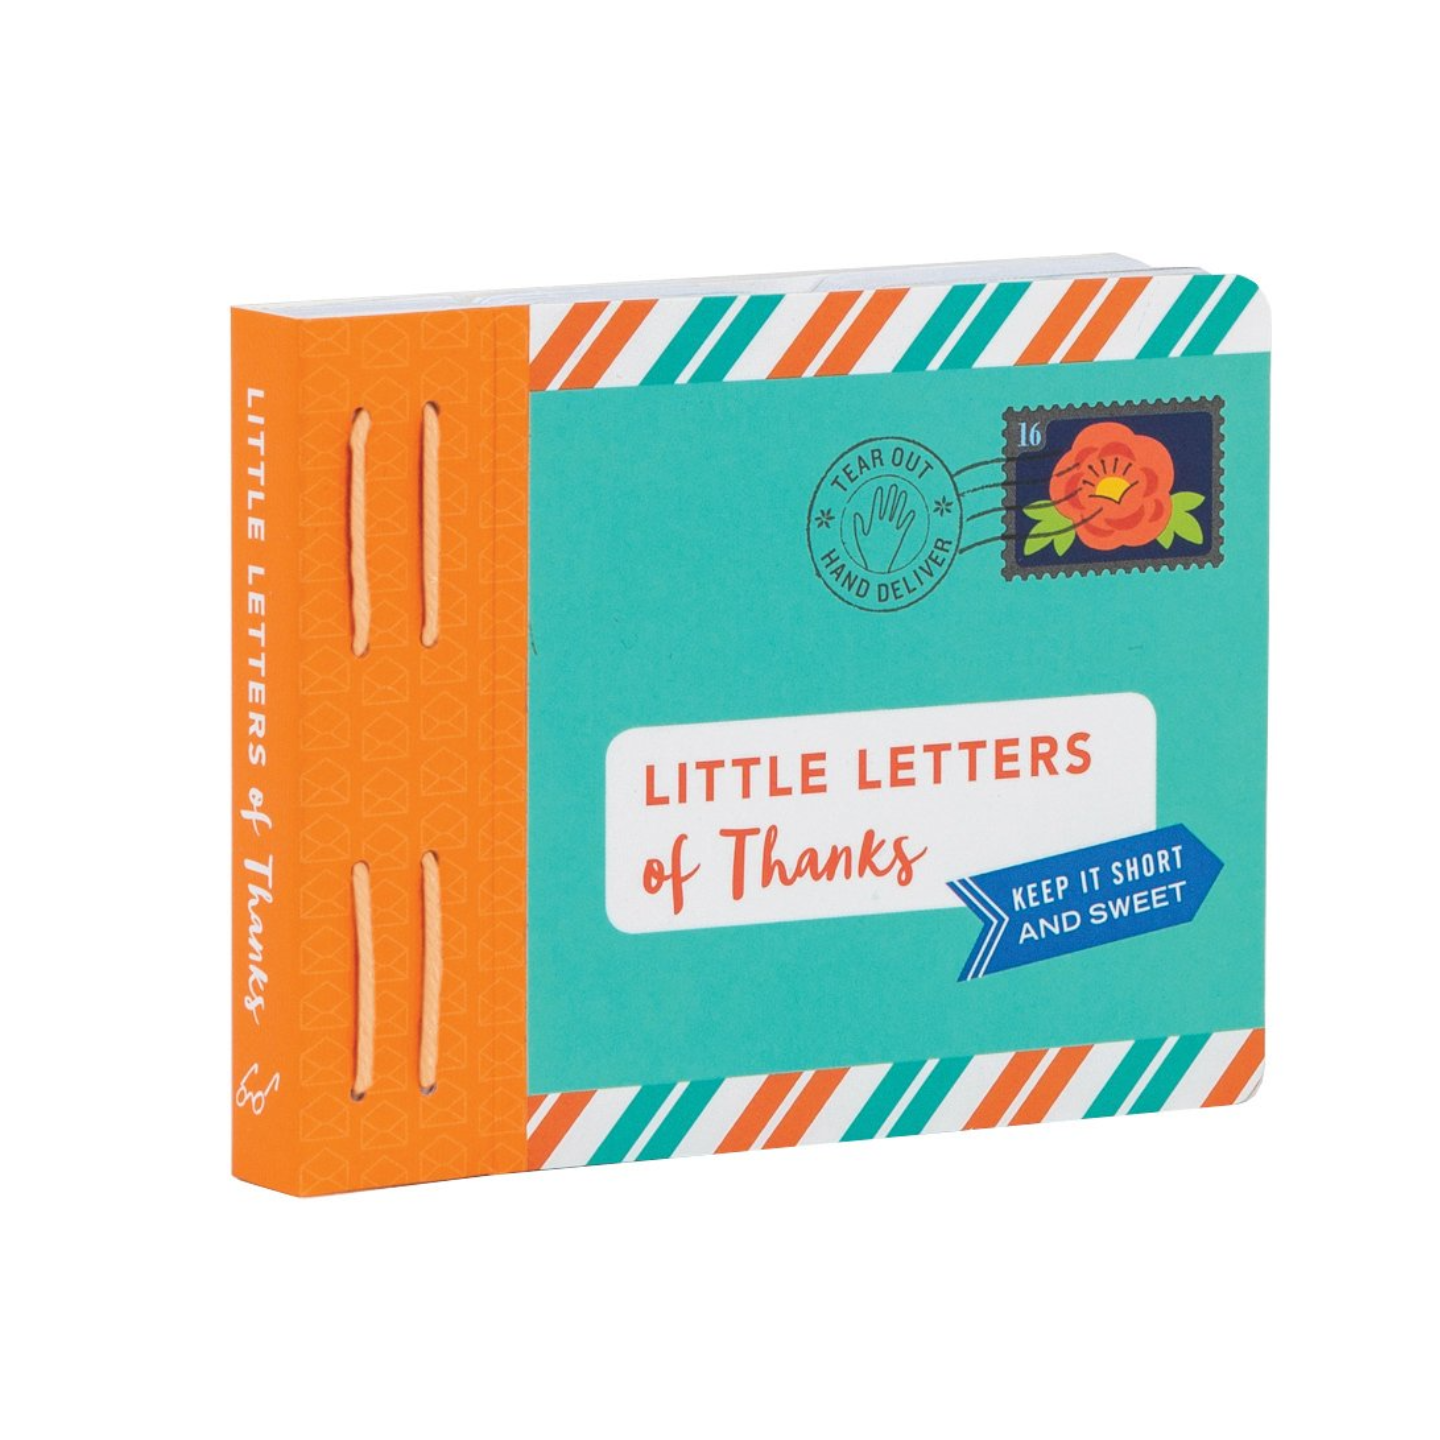 LITTLE LETTERS OF THANKS Chronicle